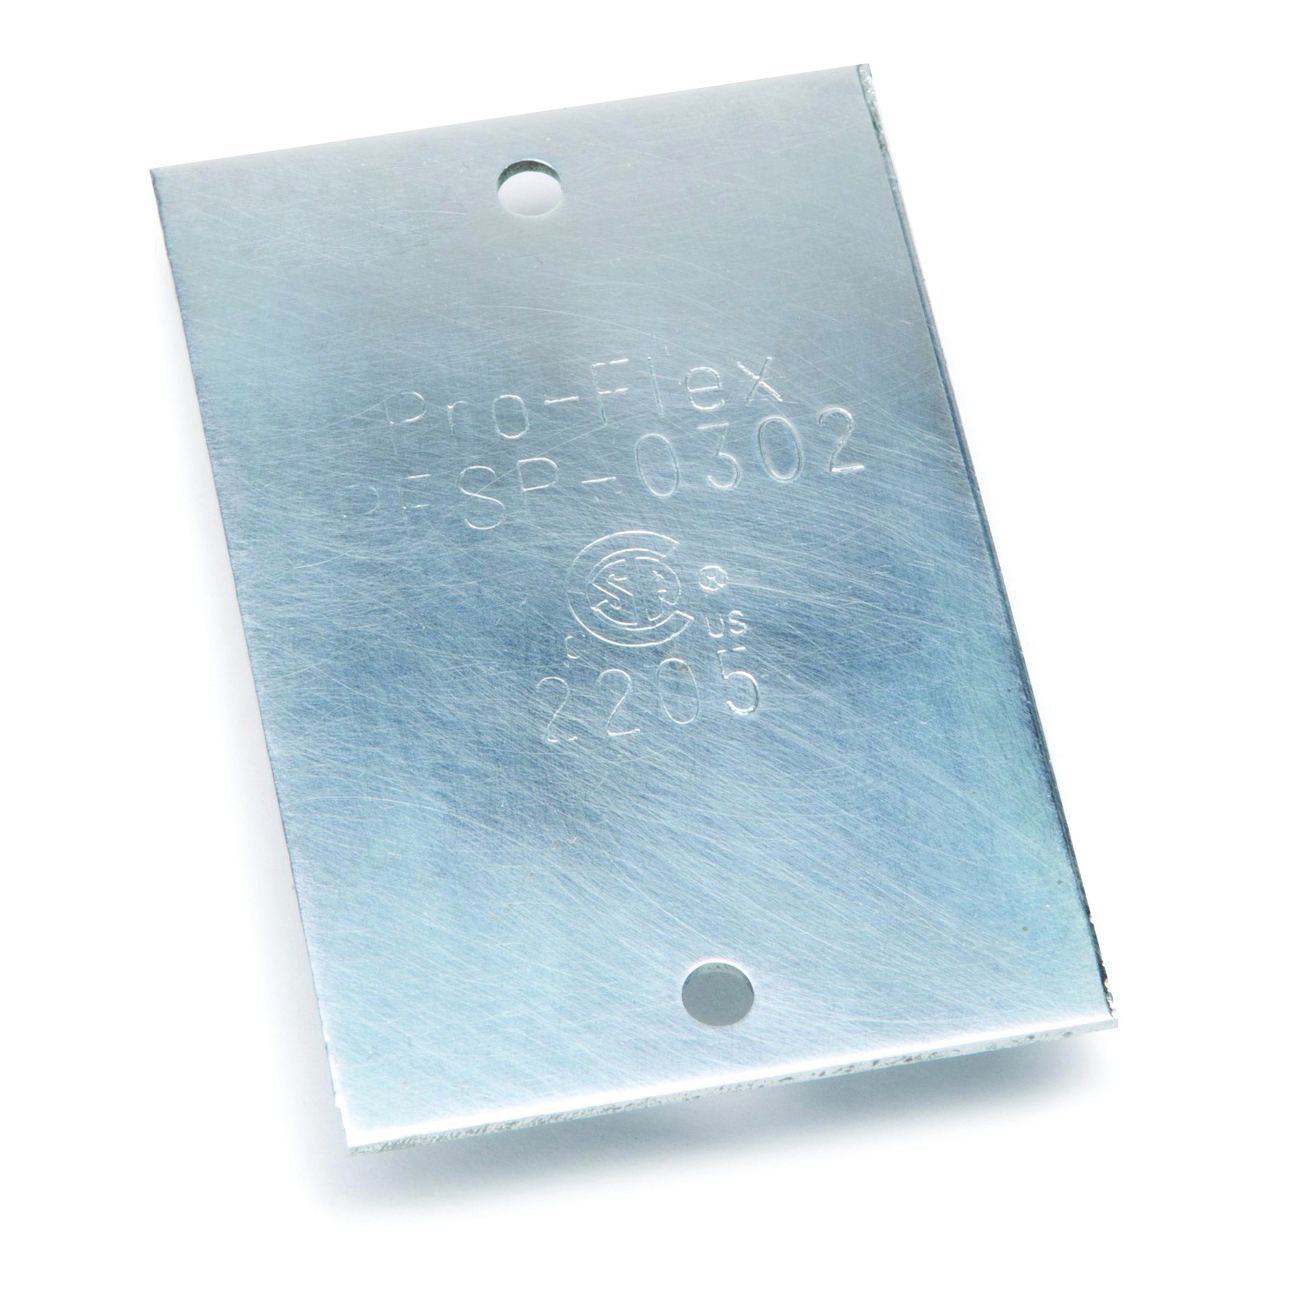 Picture of PRO-FLEX PFSP-0307 Striker Plate, For: Pro-Flex CSST Flexible Gas Piping System